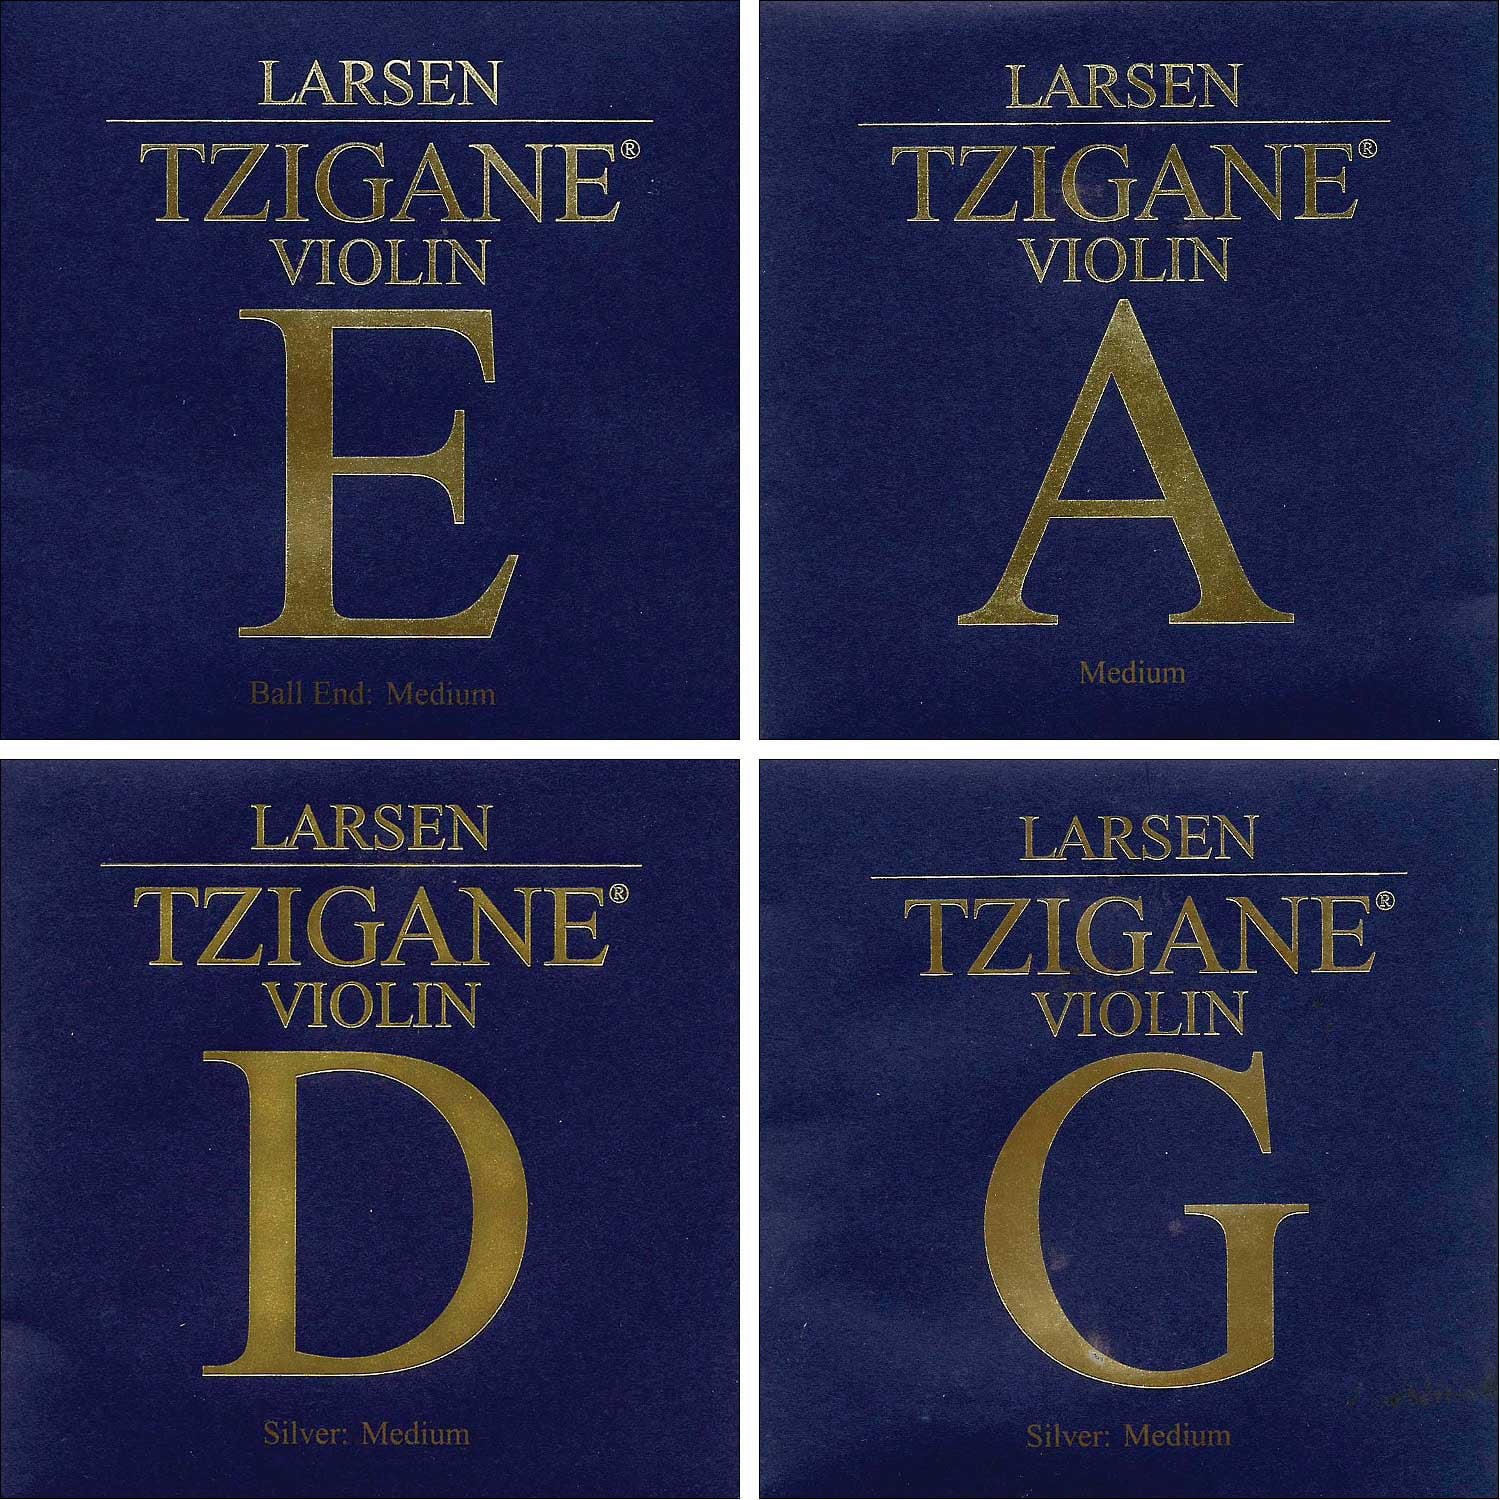 Larsen Tzigane 4 4 Violin String Set Medium Gauge Ball End E by Larsen